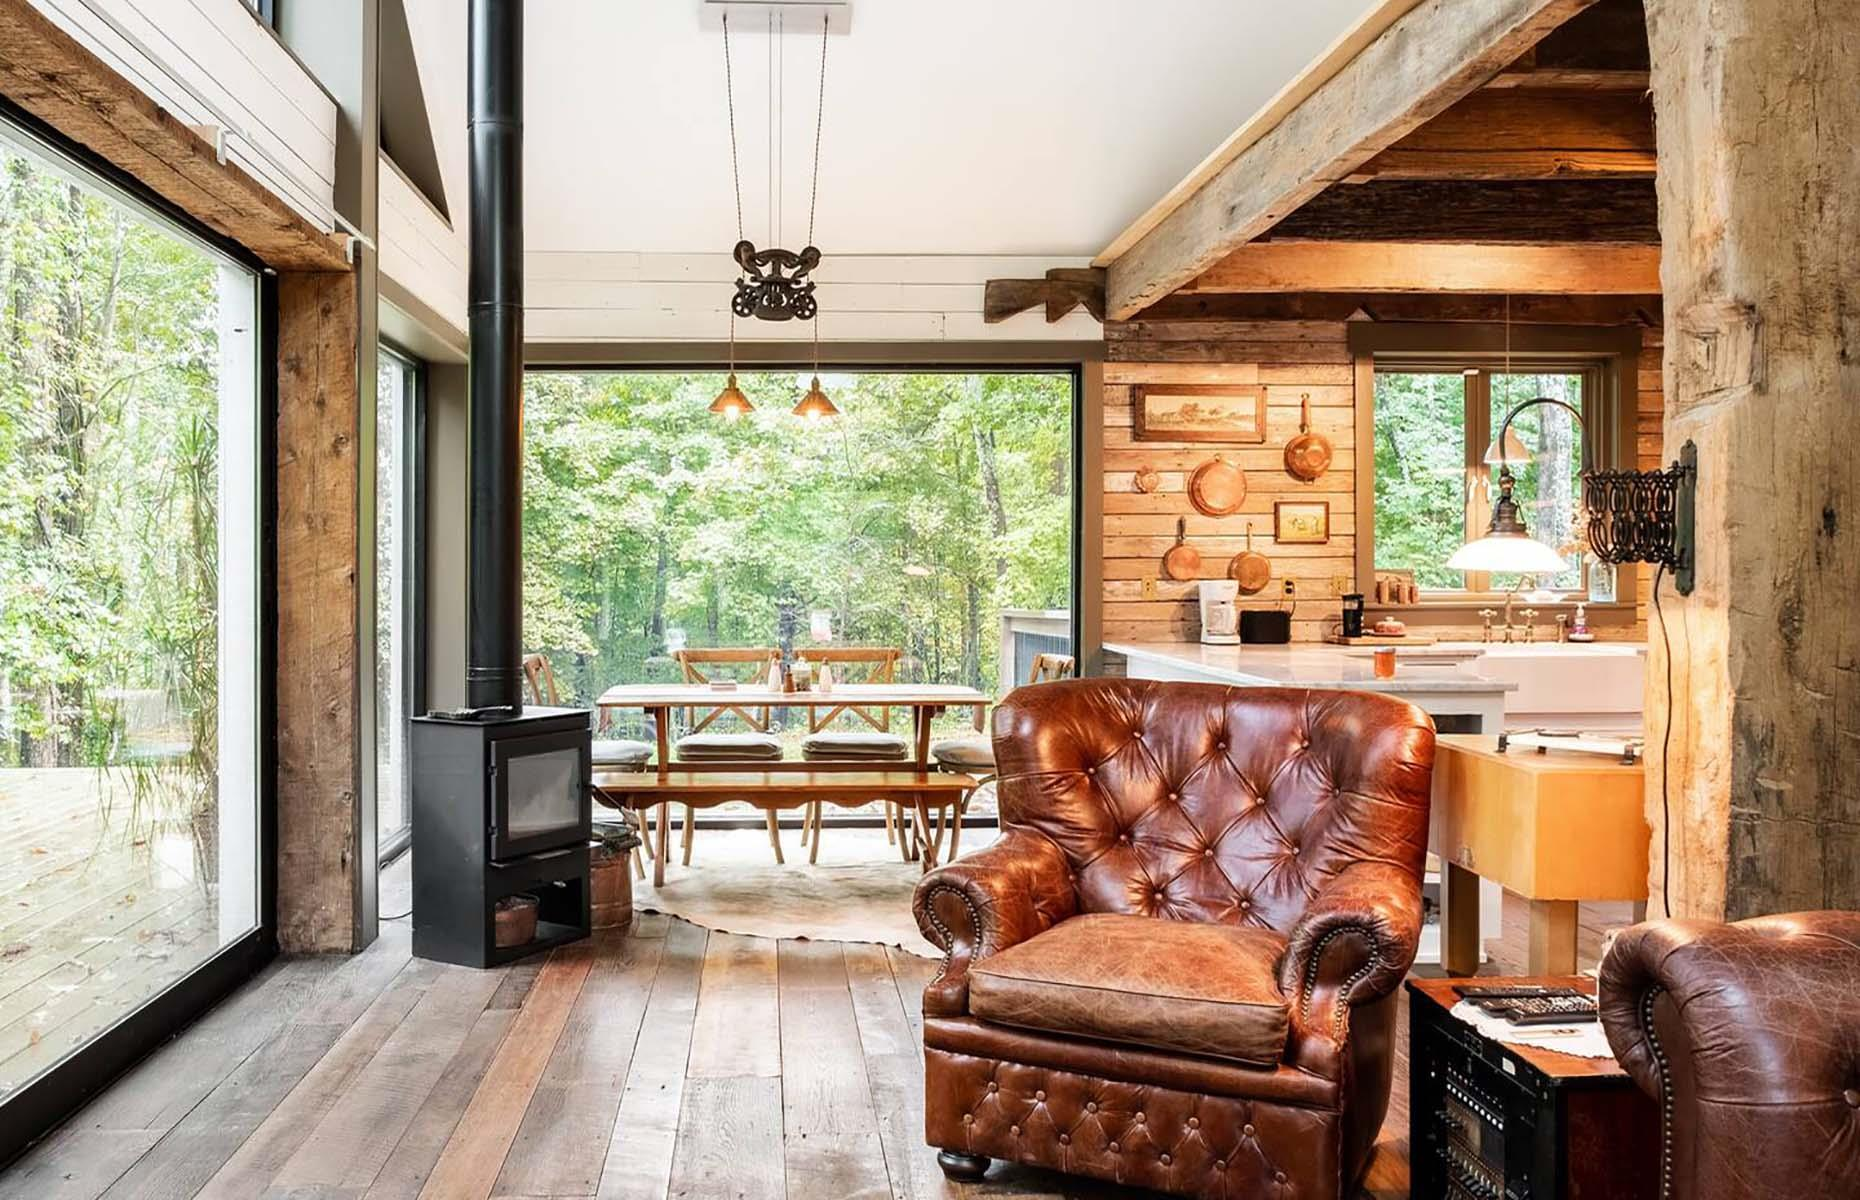 Slide 5 of 31: Made from recycled materials, this cozy cabin near Nashville is the ultimate secluded getaway. Hugged by the surrounding forest, the open-plan home has a vintage feel to it. Thanks to the floor-to-ceiling picture windows, you can drink in the area's natural beauty from the comfort of an armchair.